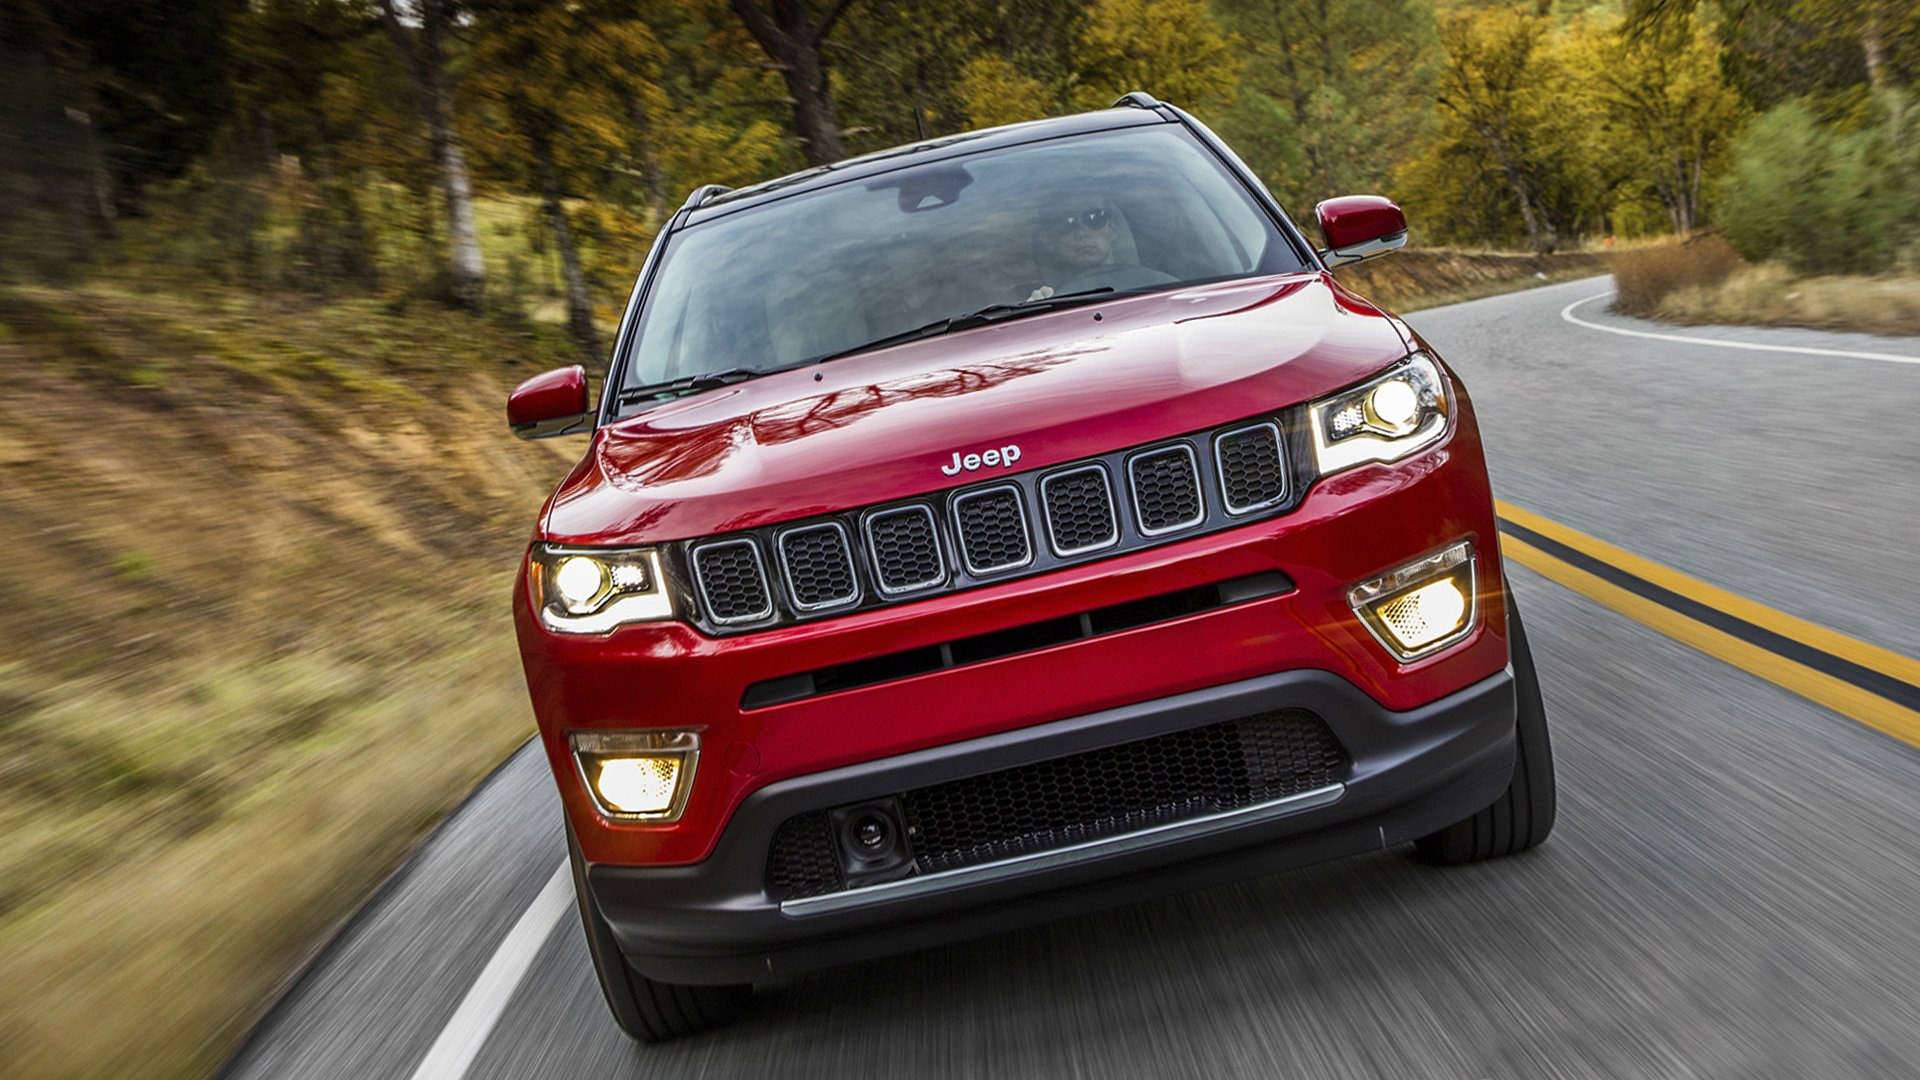 New 2019 Jeep Compass Wallpaper HD Desktop